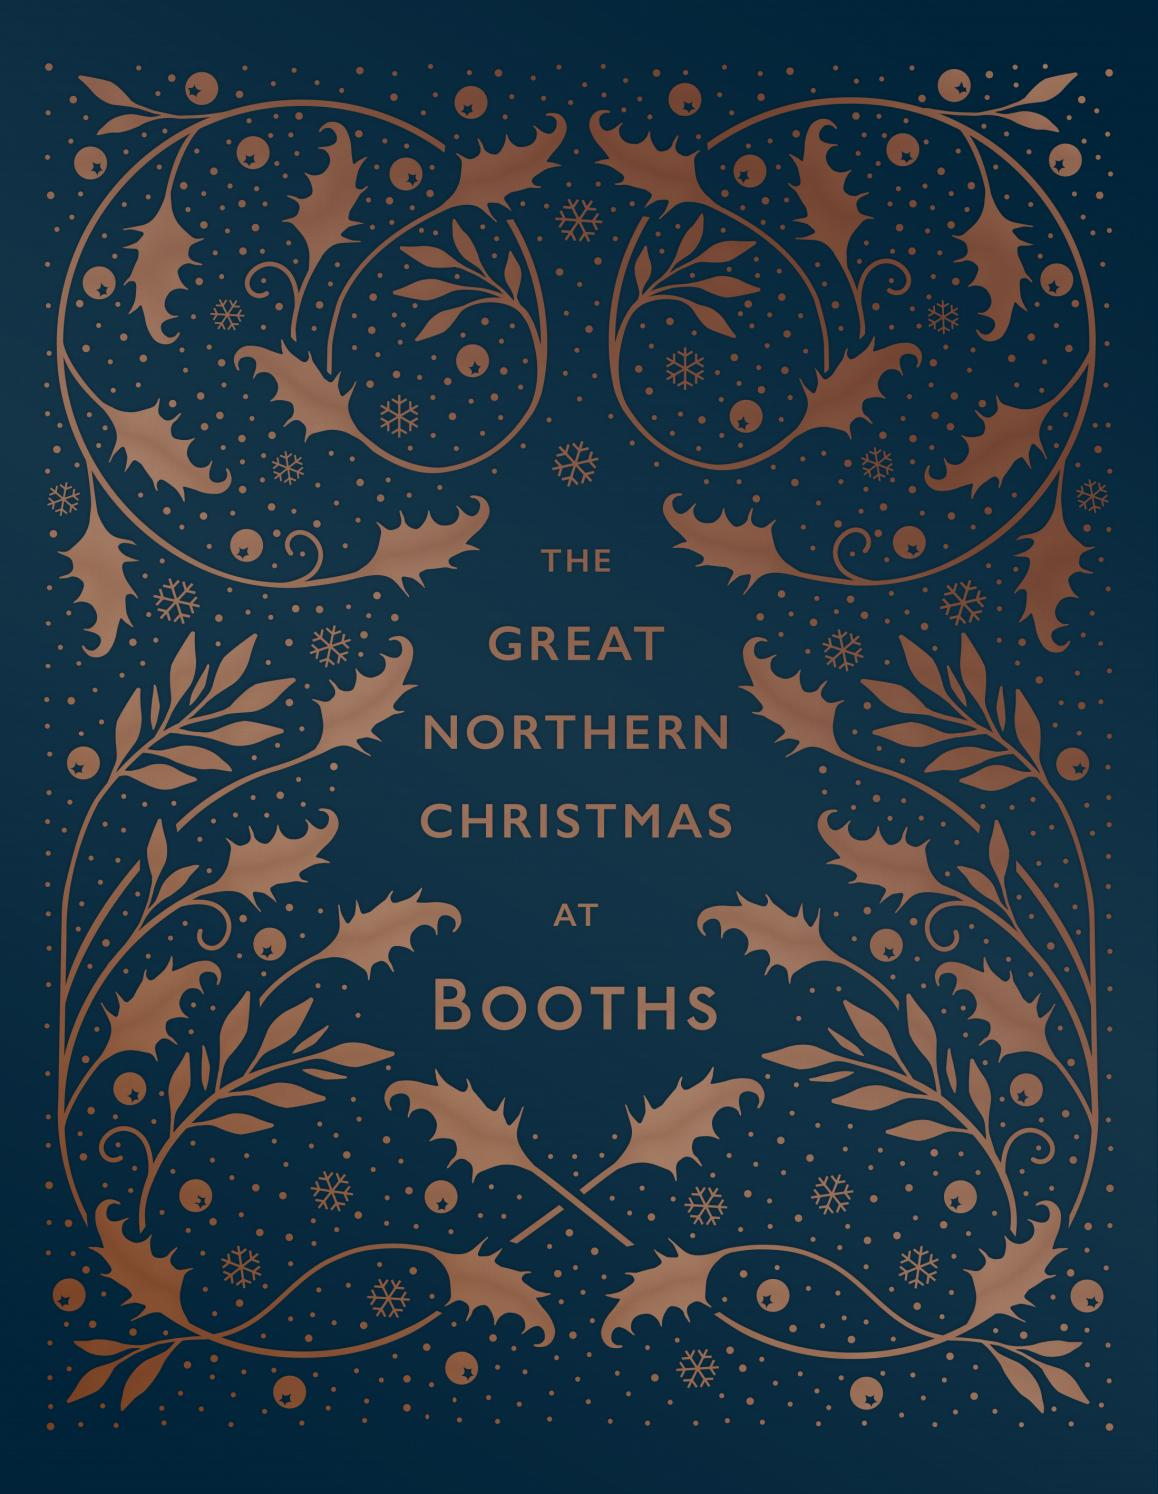 Booths Christmas Book Cover 2016